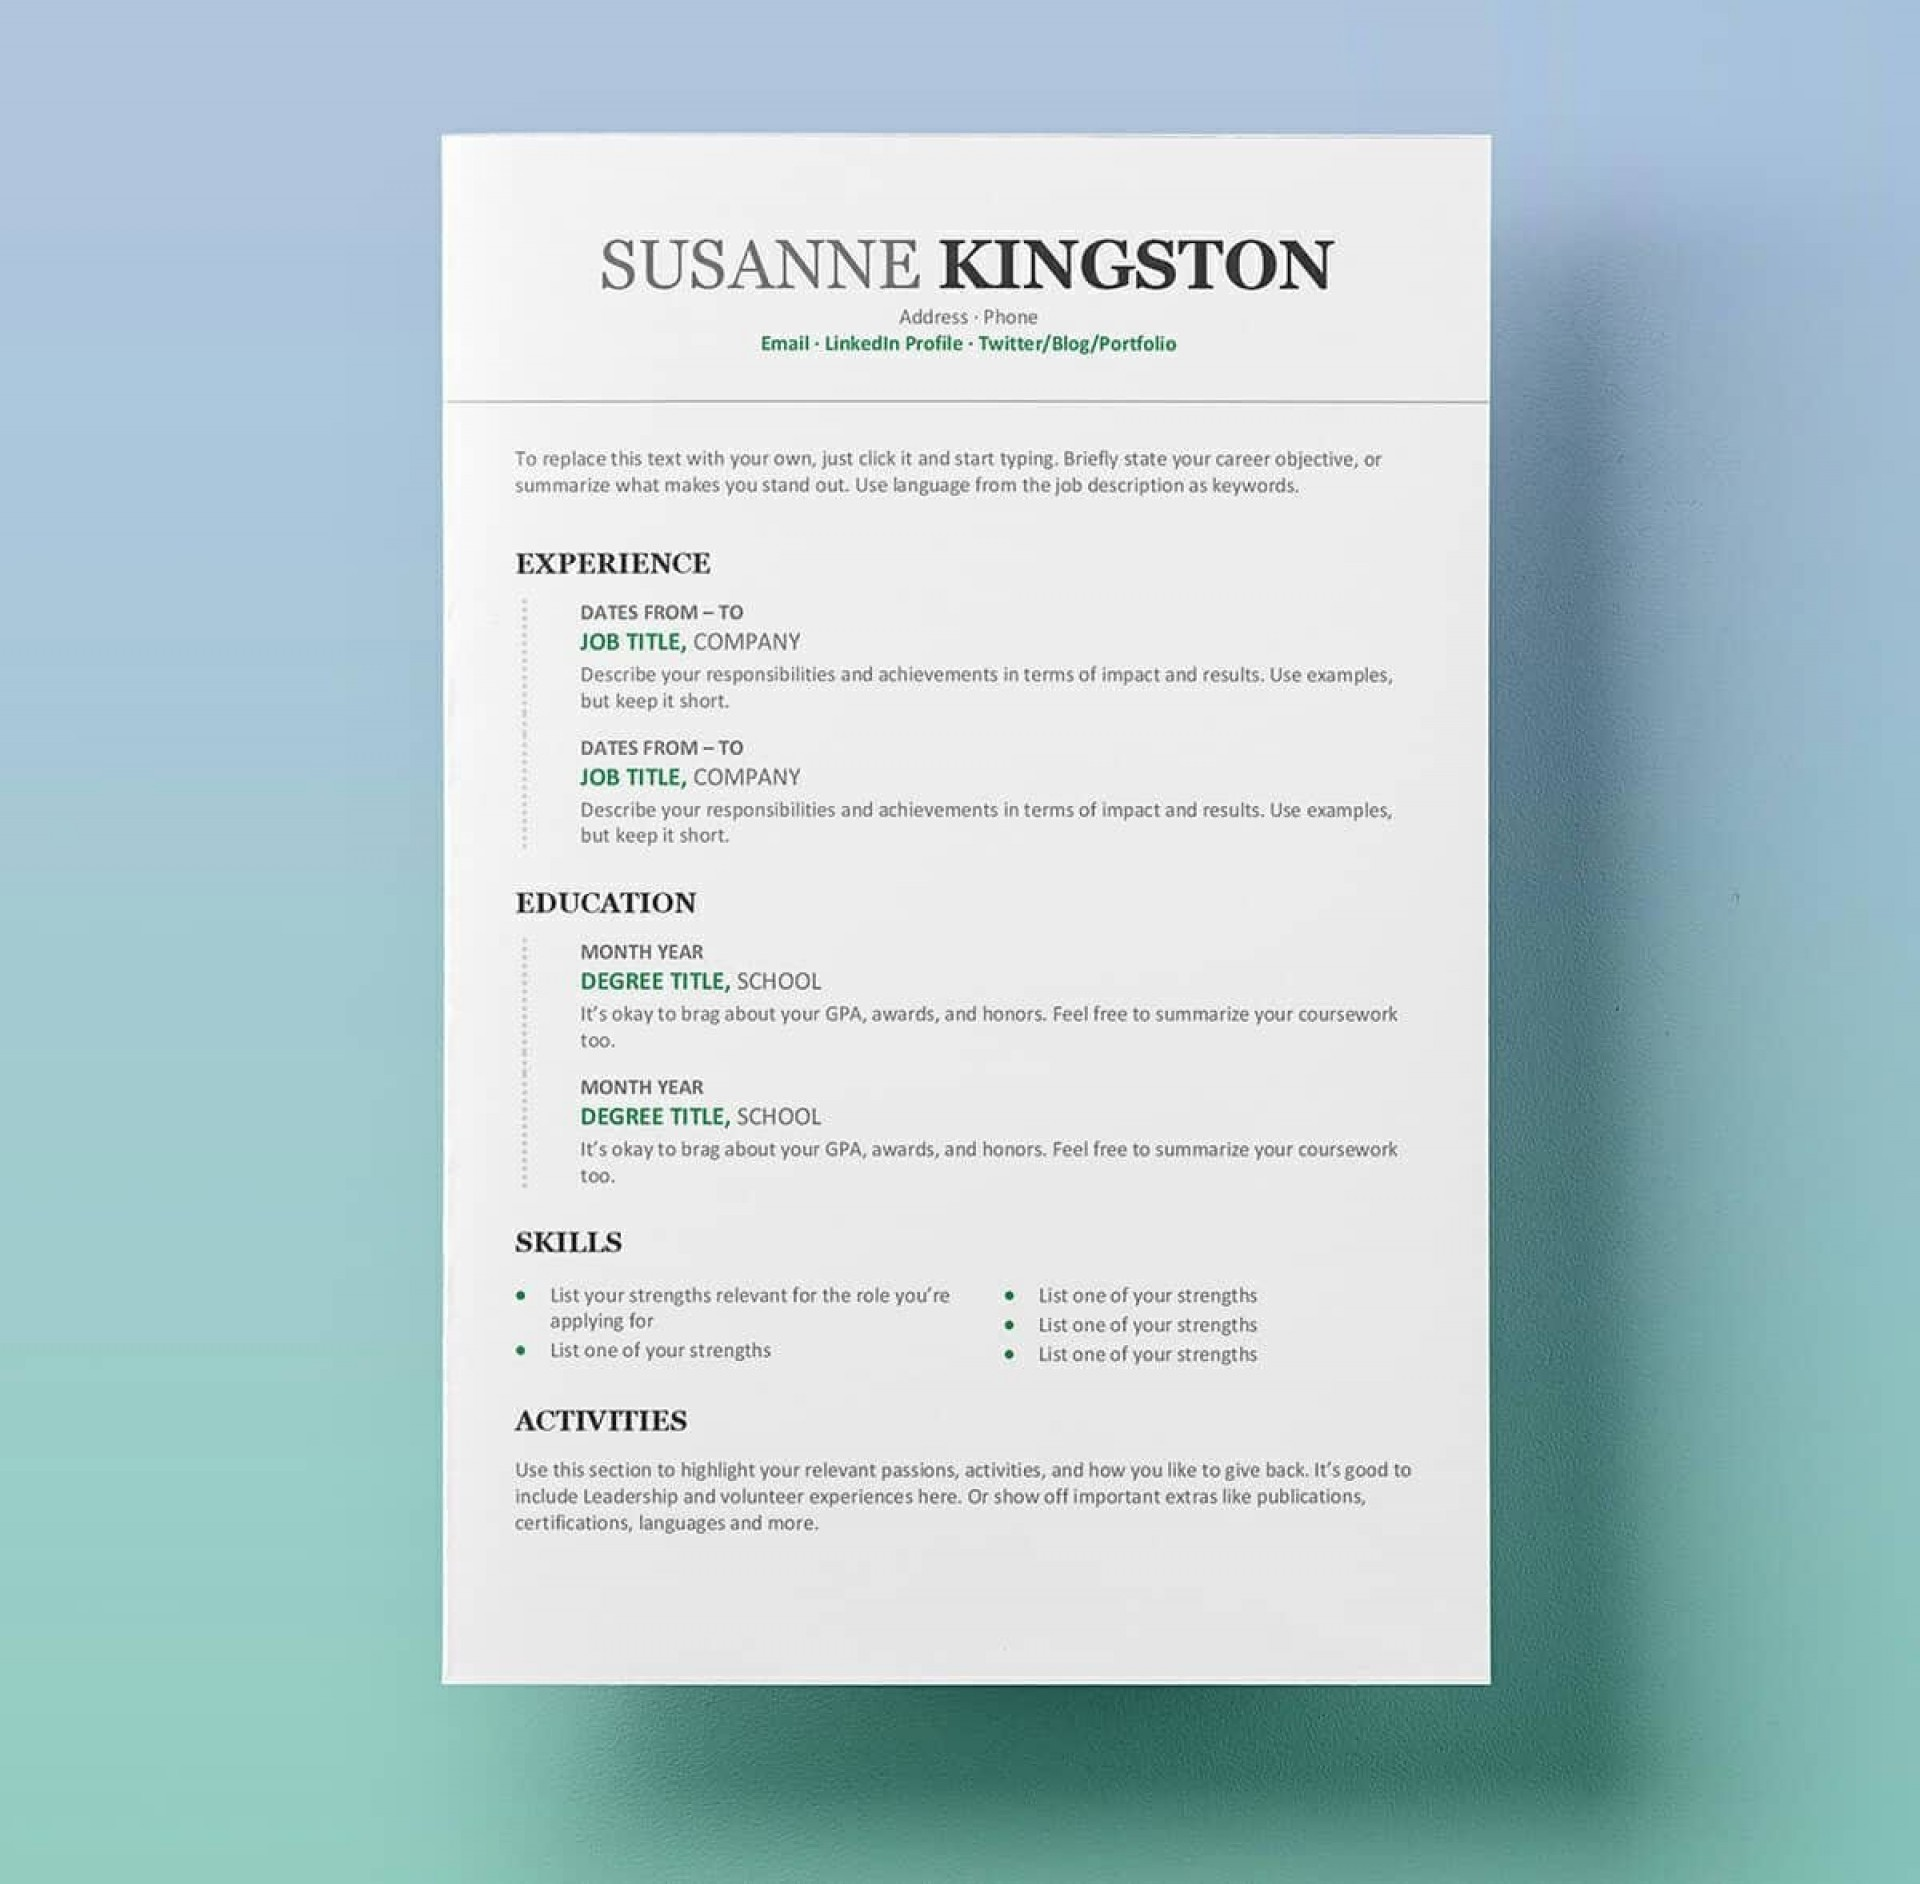 007 Excellent Resume Template Free Word Design  Download Document 2020 For Fresher1920